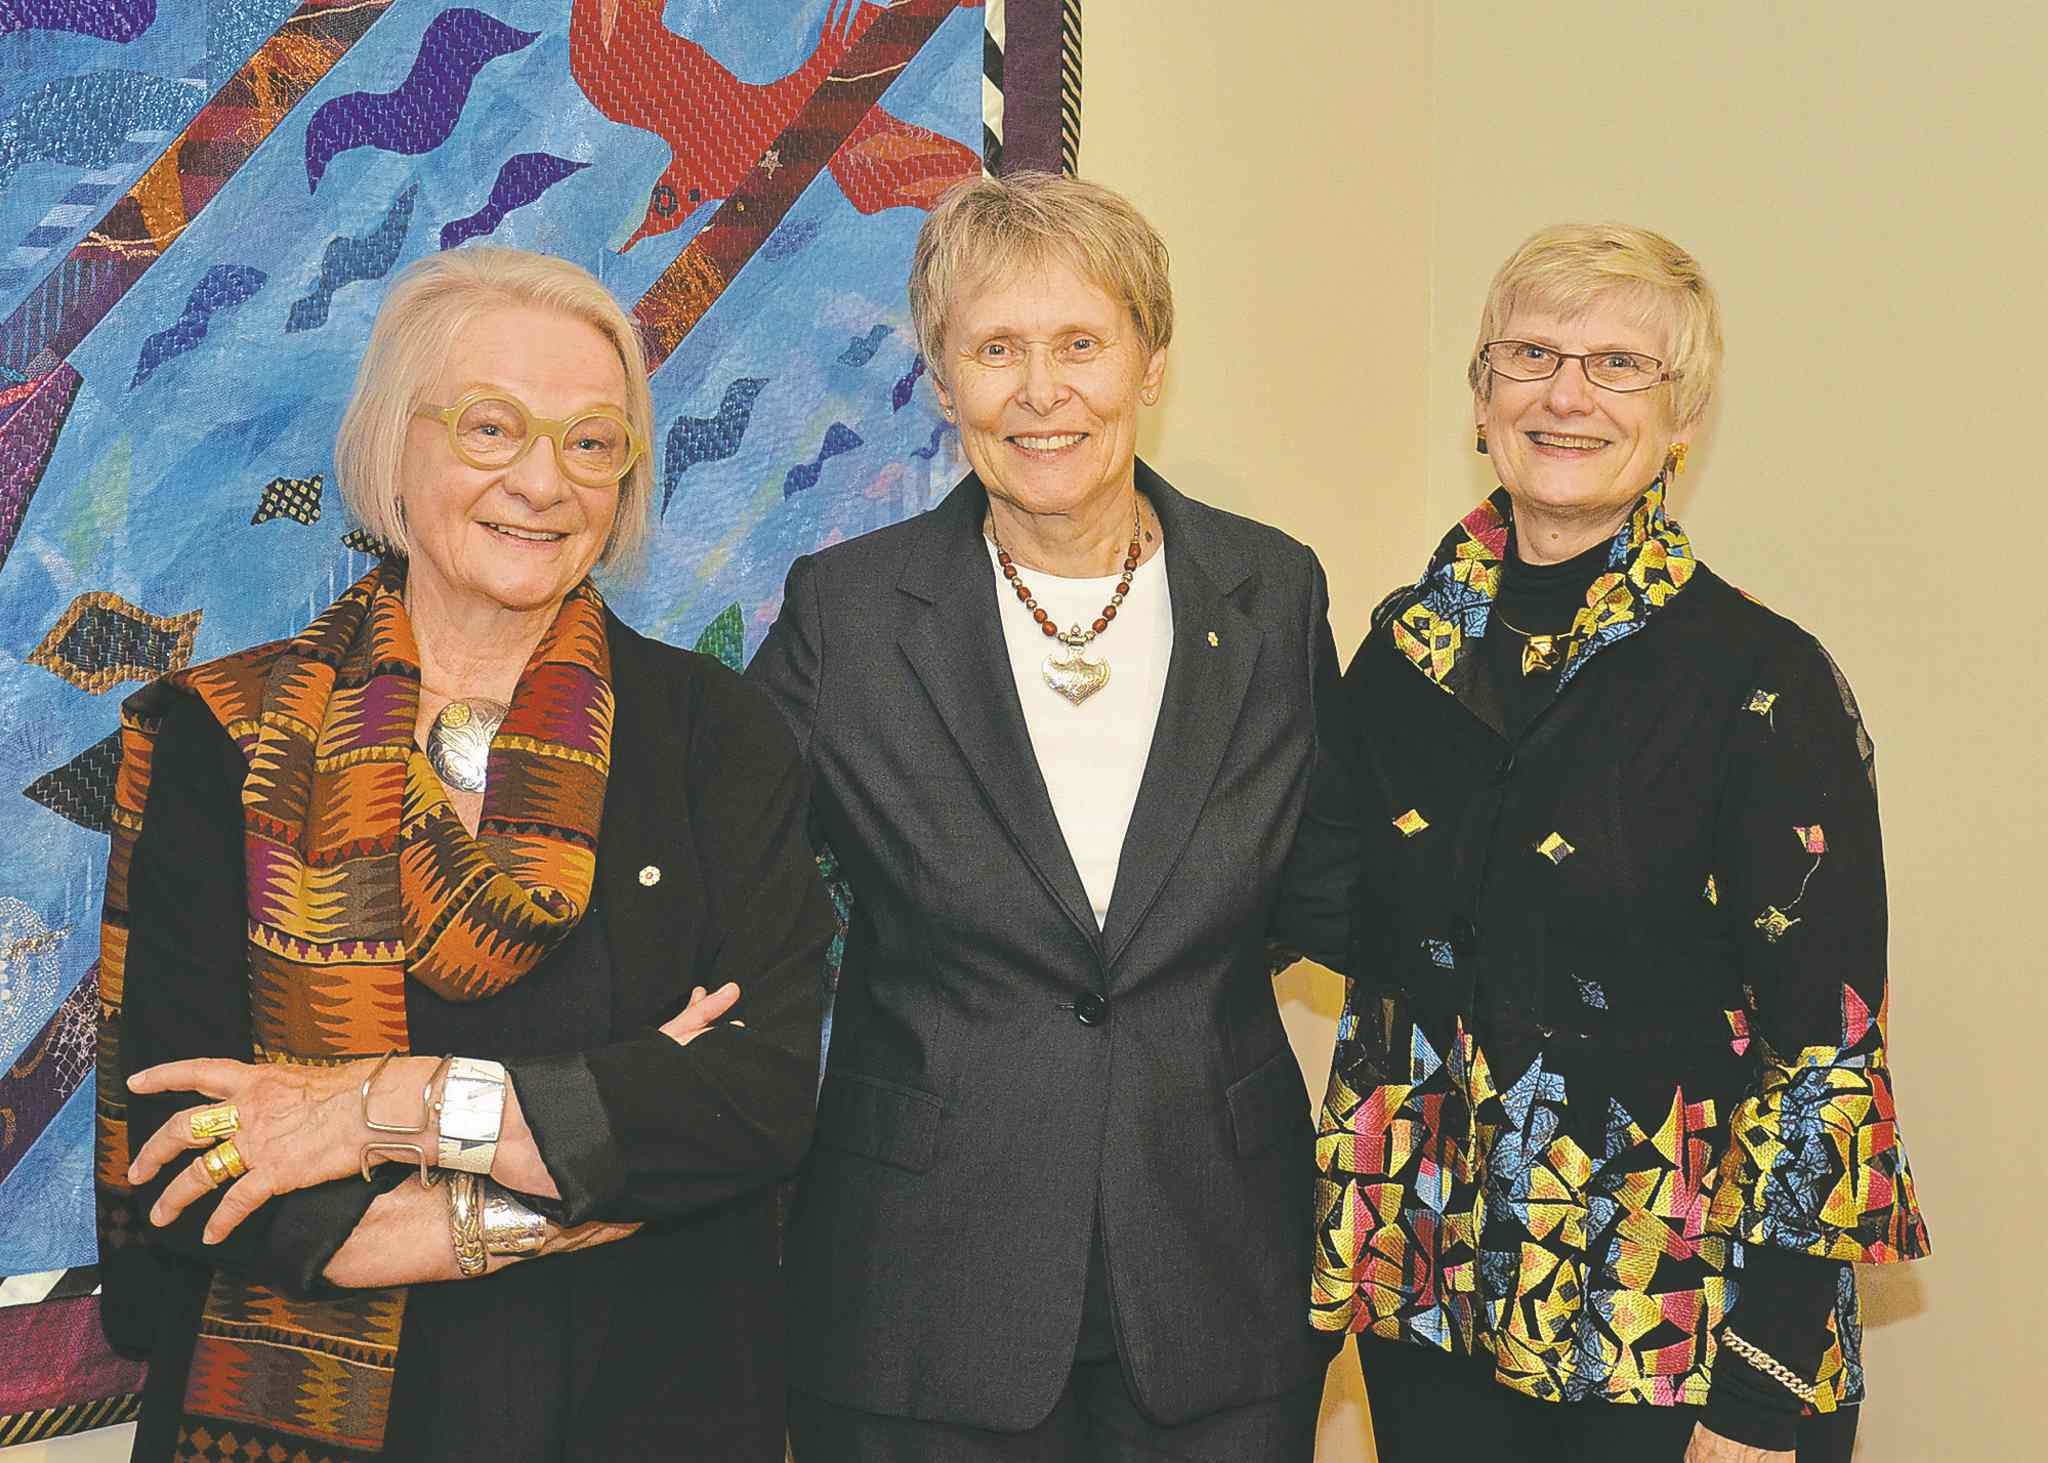 From left to right: Carole Sabiston, Roberta Bondar and Pat Bovey pictured at the Buhler Gallery recently. Sabiston and Bondar are the artists behind the gallery's latest exhibit titled Dreams & Realities — Human Sensitivity of Place.